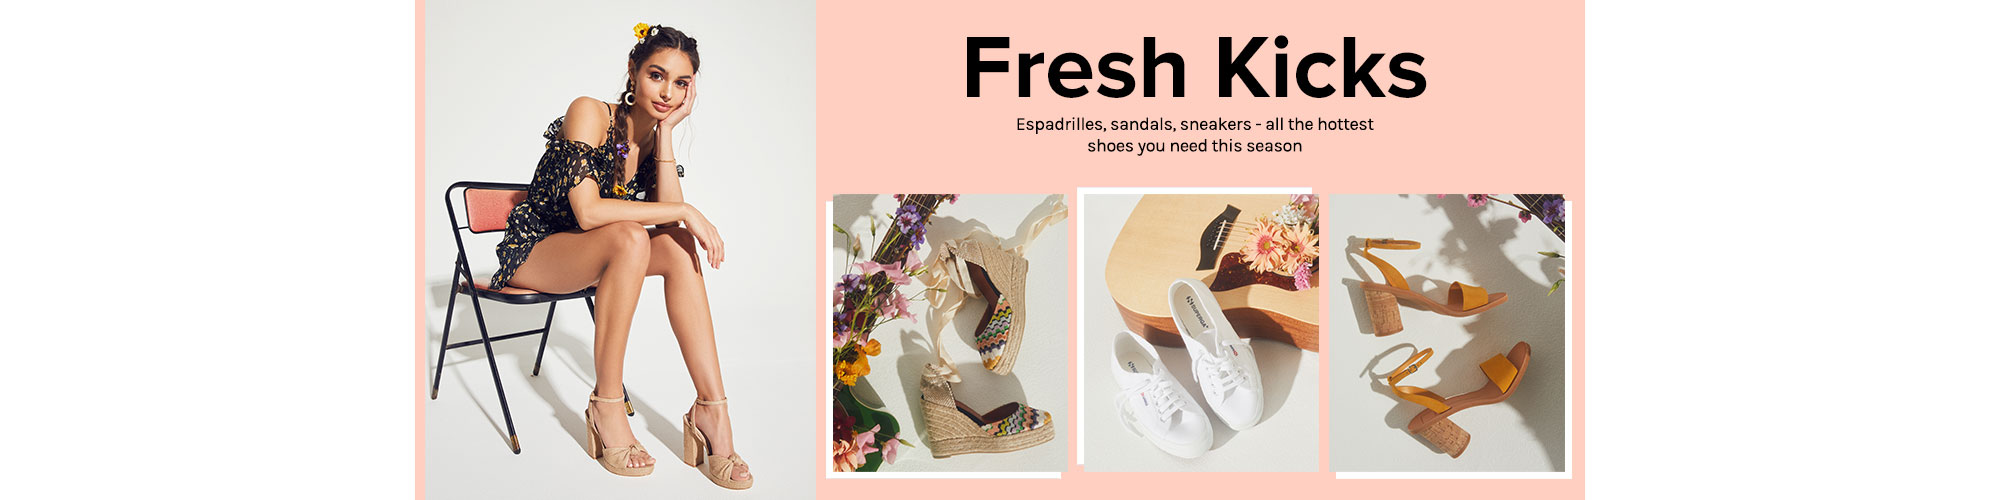 Fresh Kicks. Espadrilles, sandals, sneakers - all the hottest shoes you need this season.